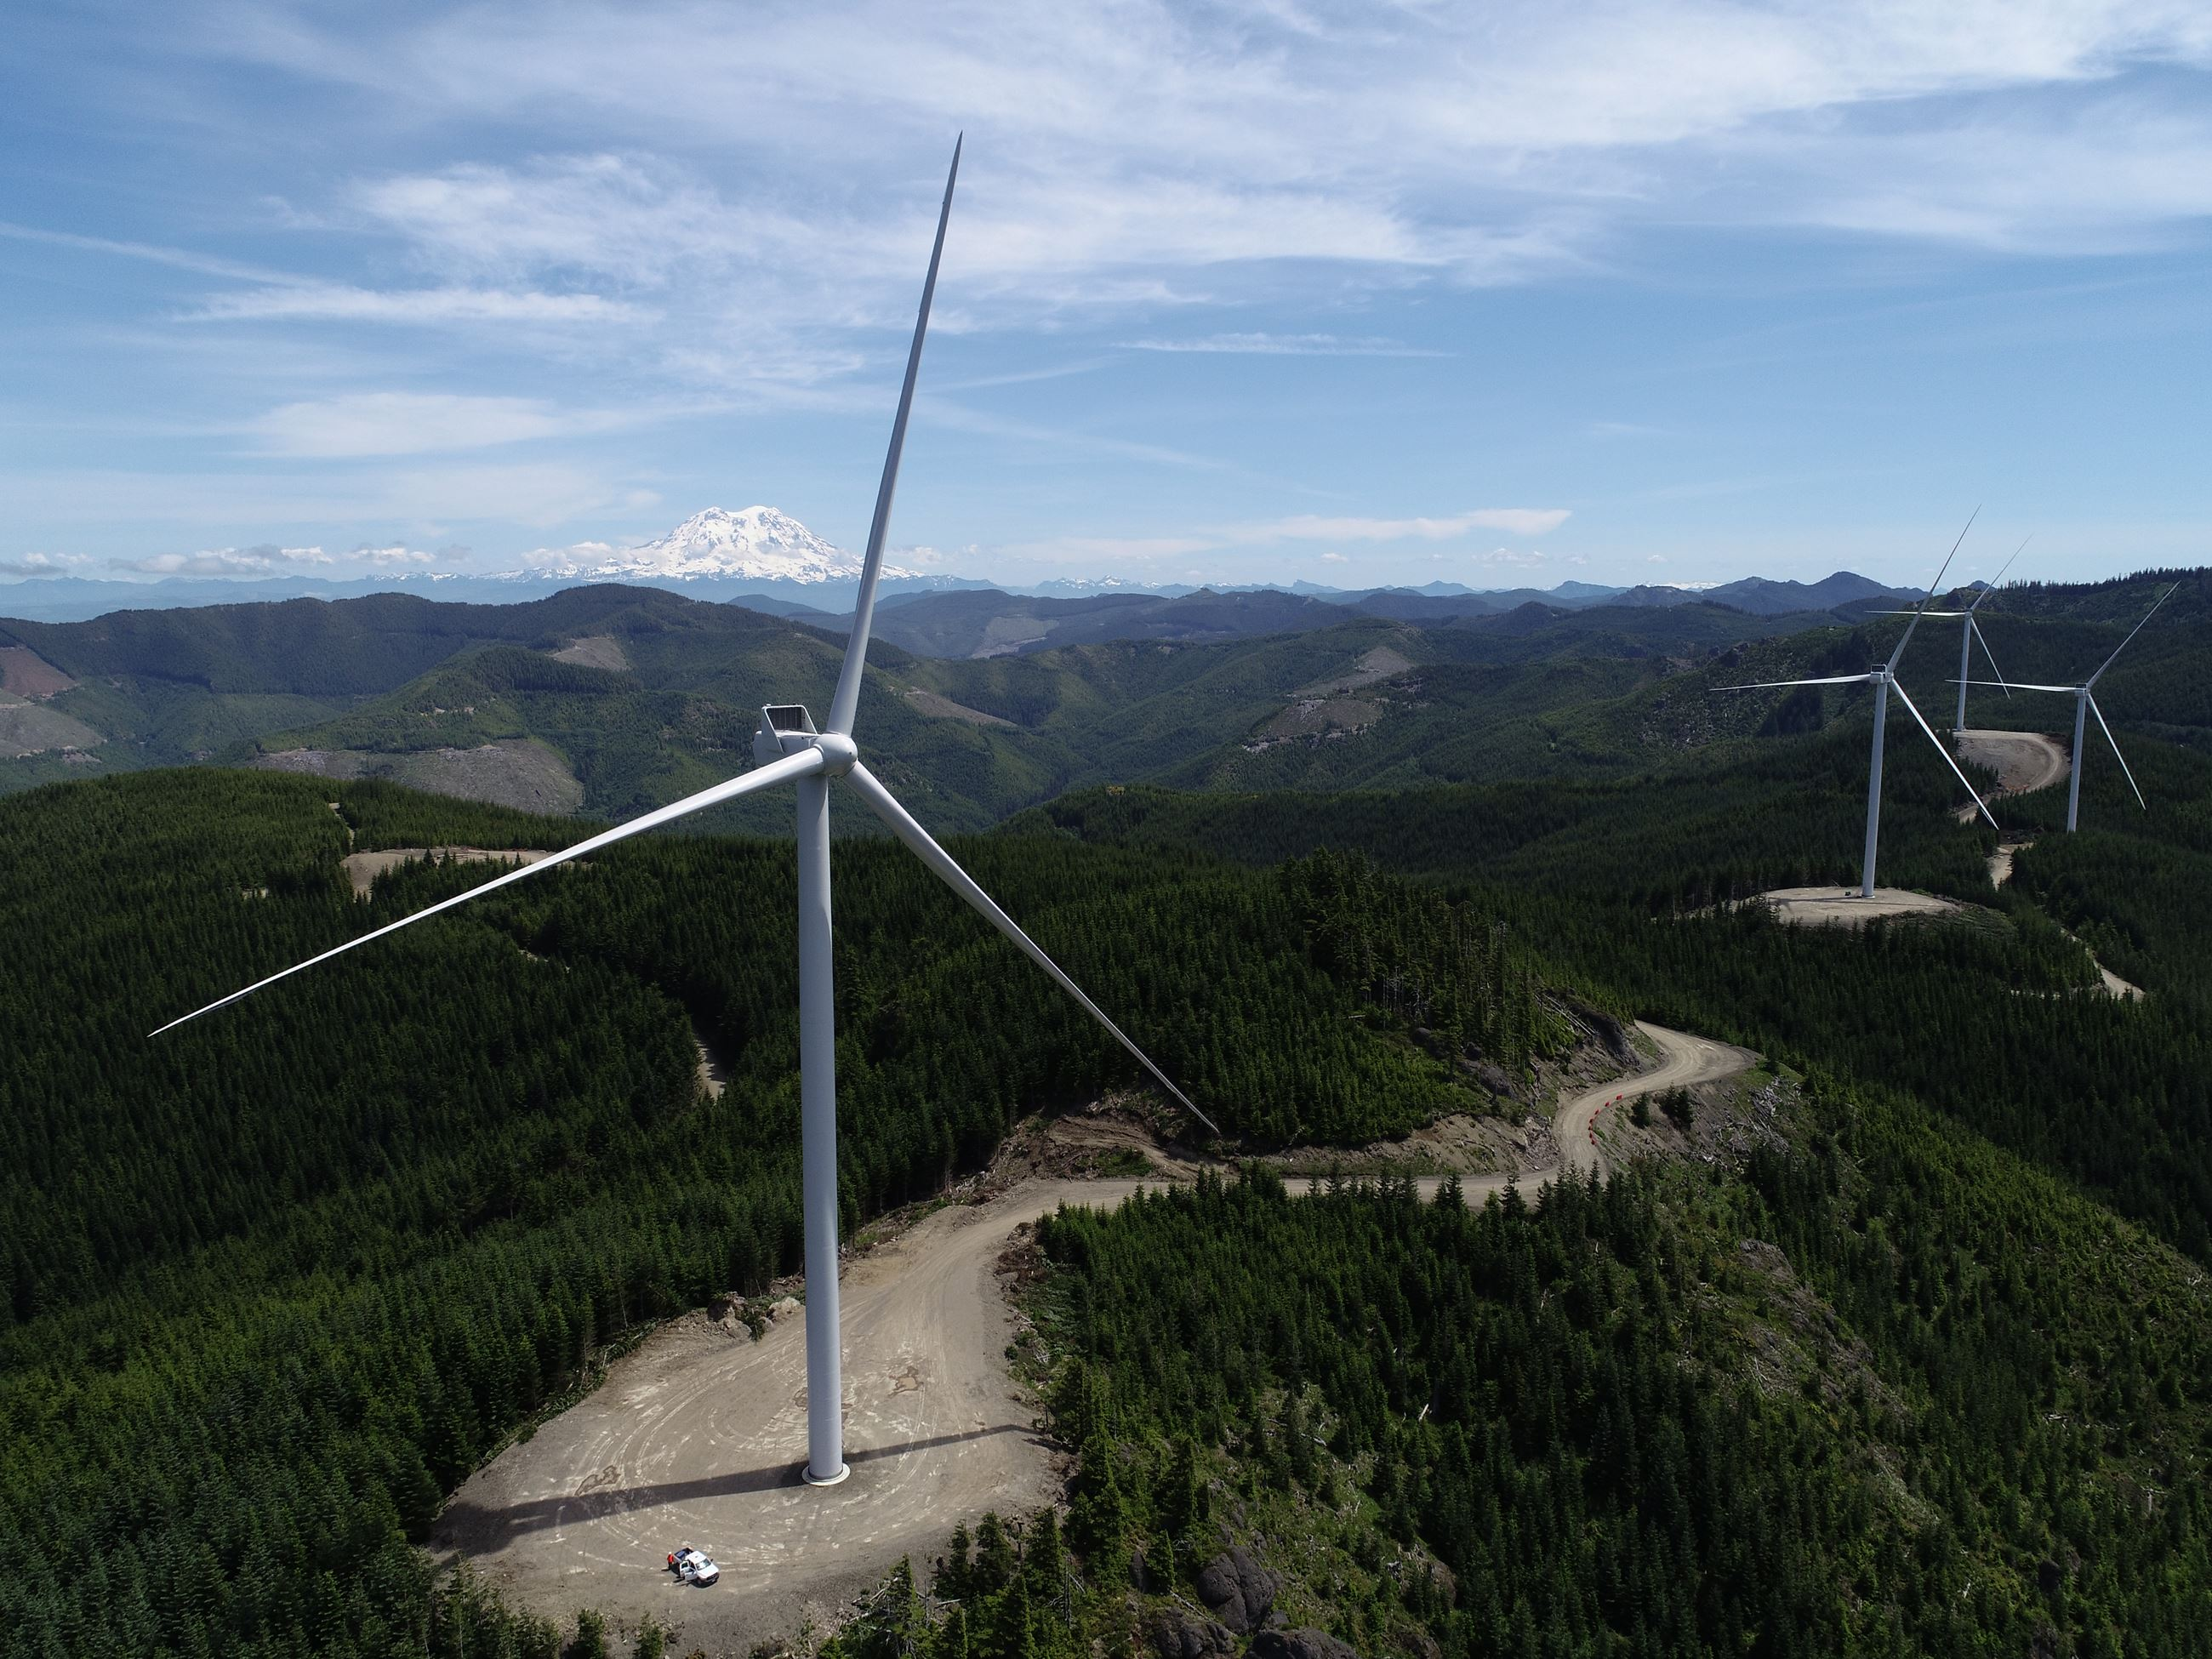 This is a photo of the Skookumchuck Wind Facility.